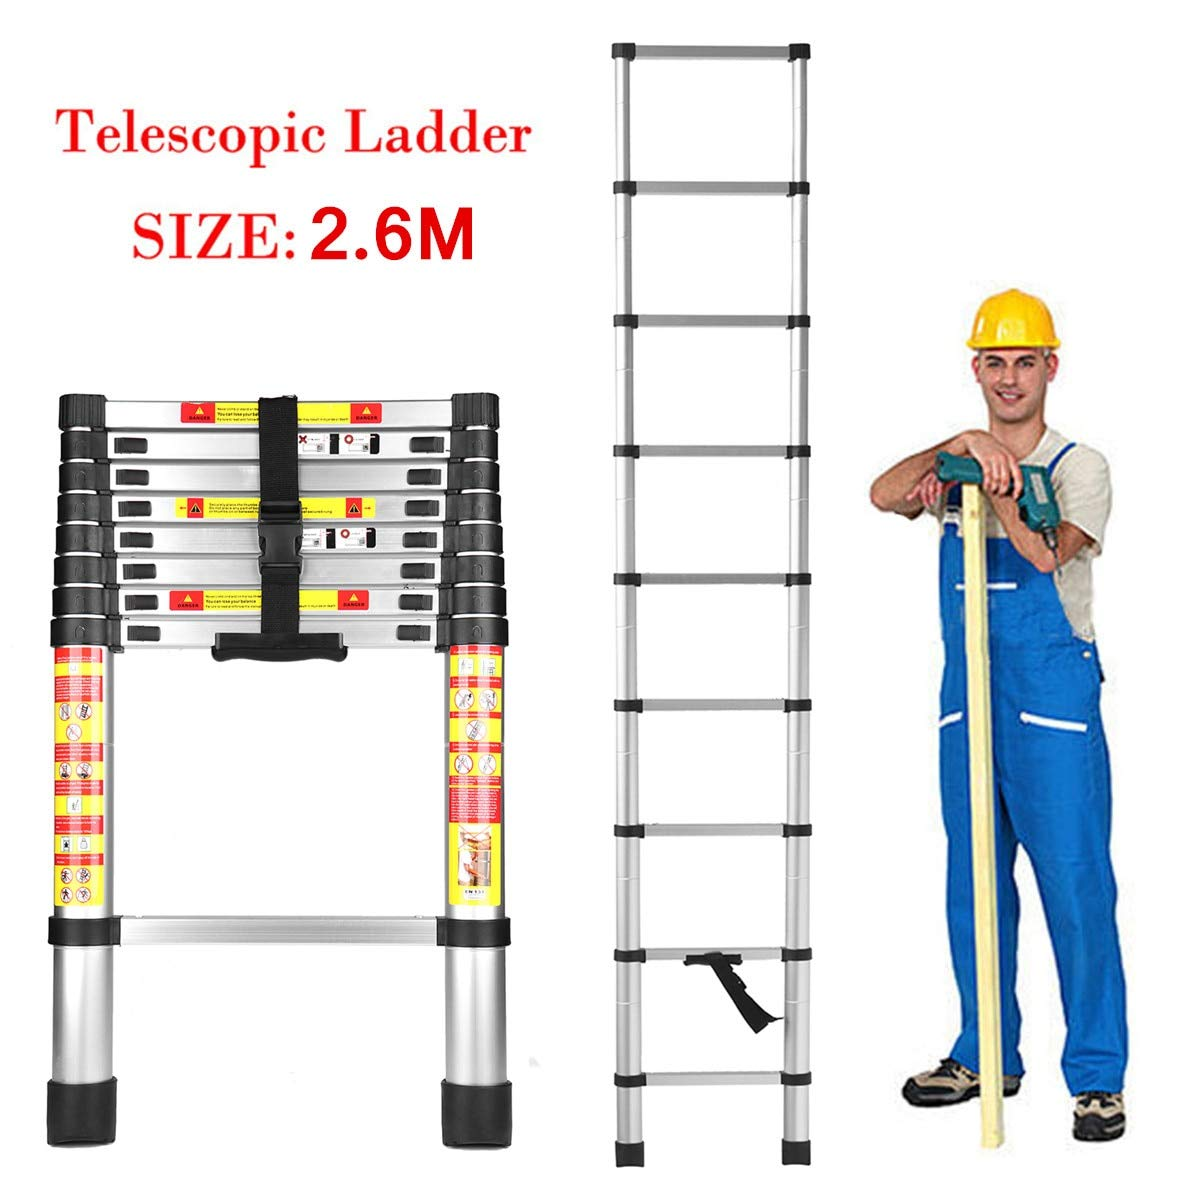 HOME BUY Telescopic Ladder, Folding Step Ladder